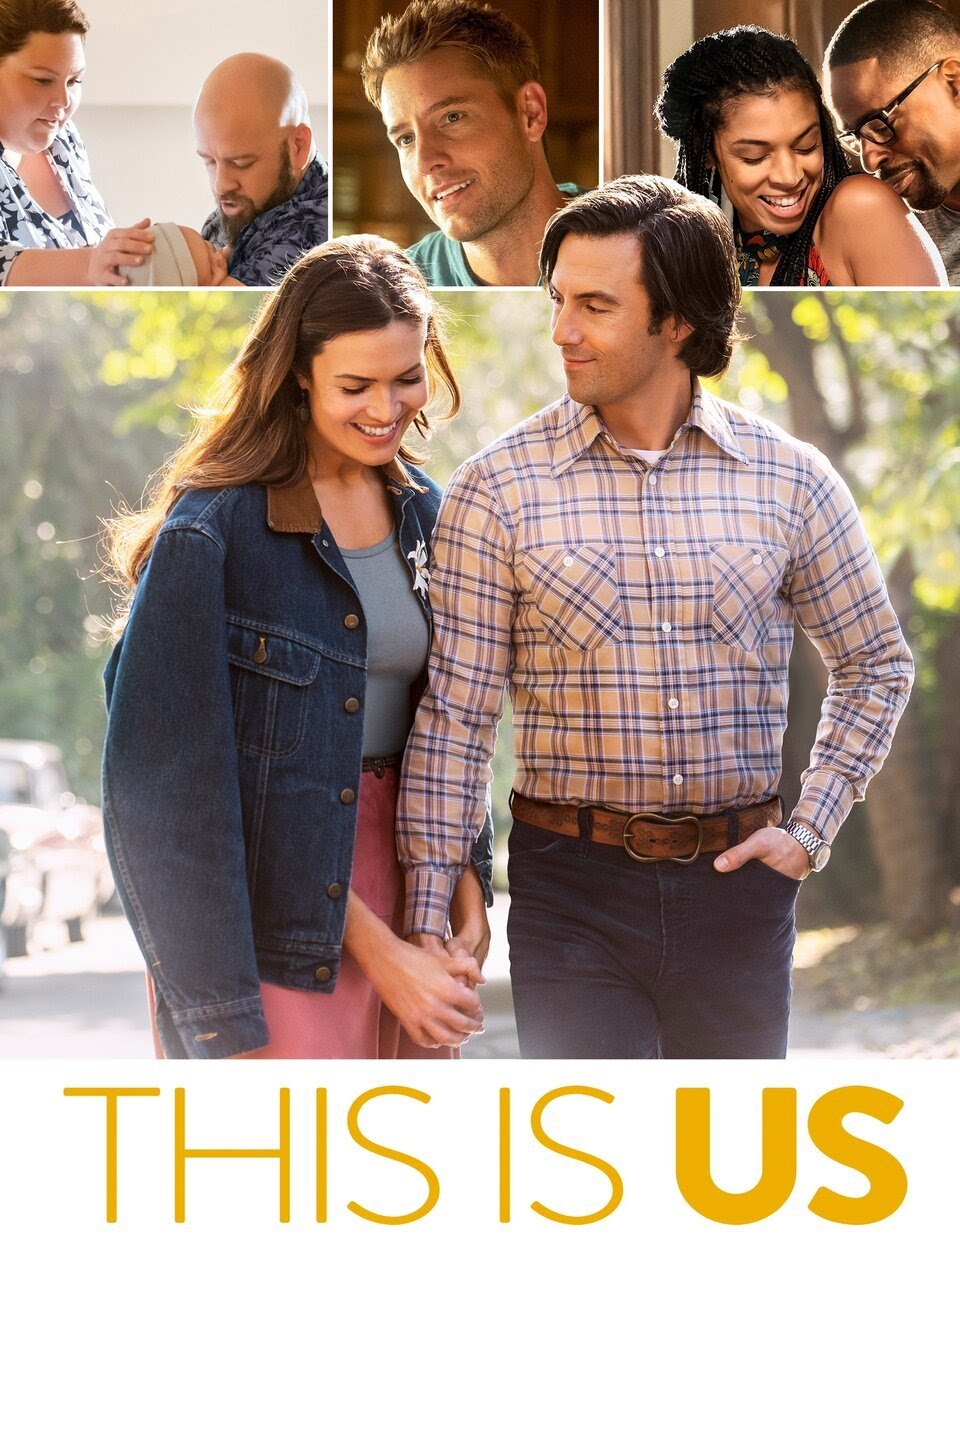 This Is Us Season 5 Episode 9 Srt Subtitles DOWNLOAD